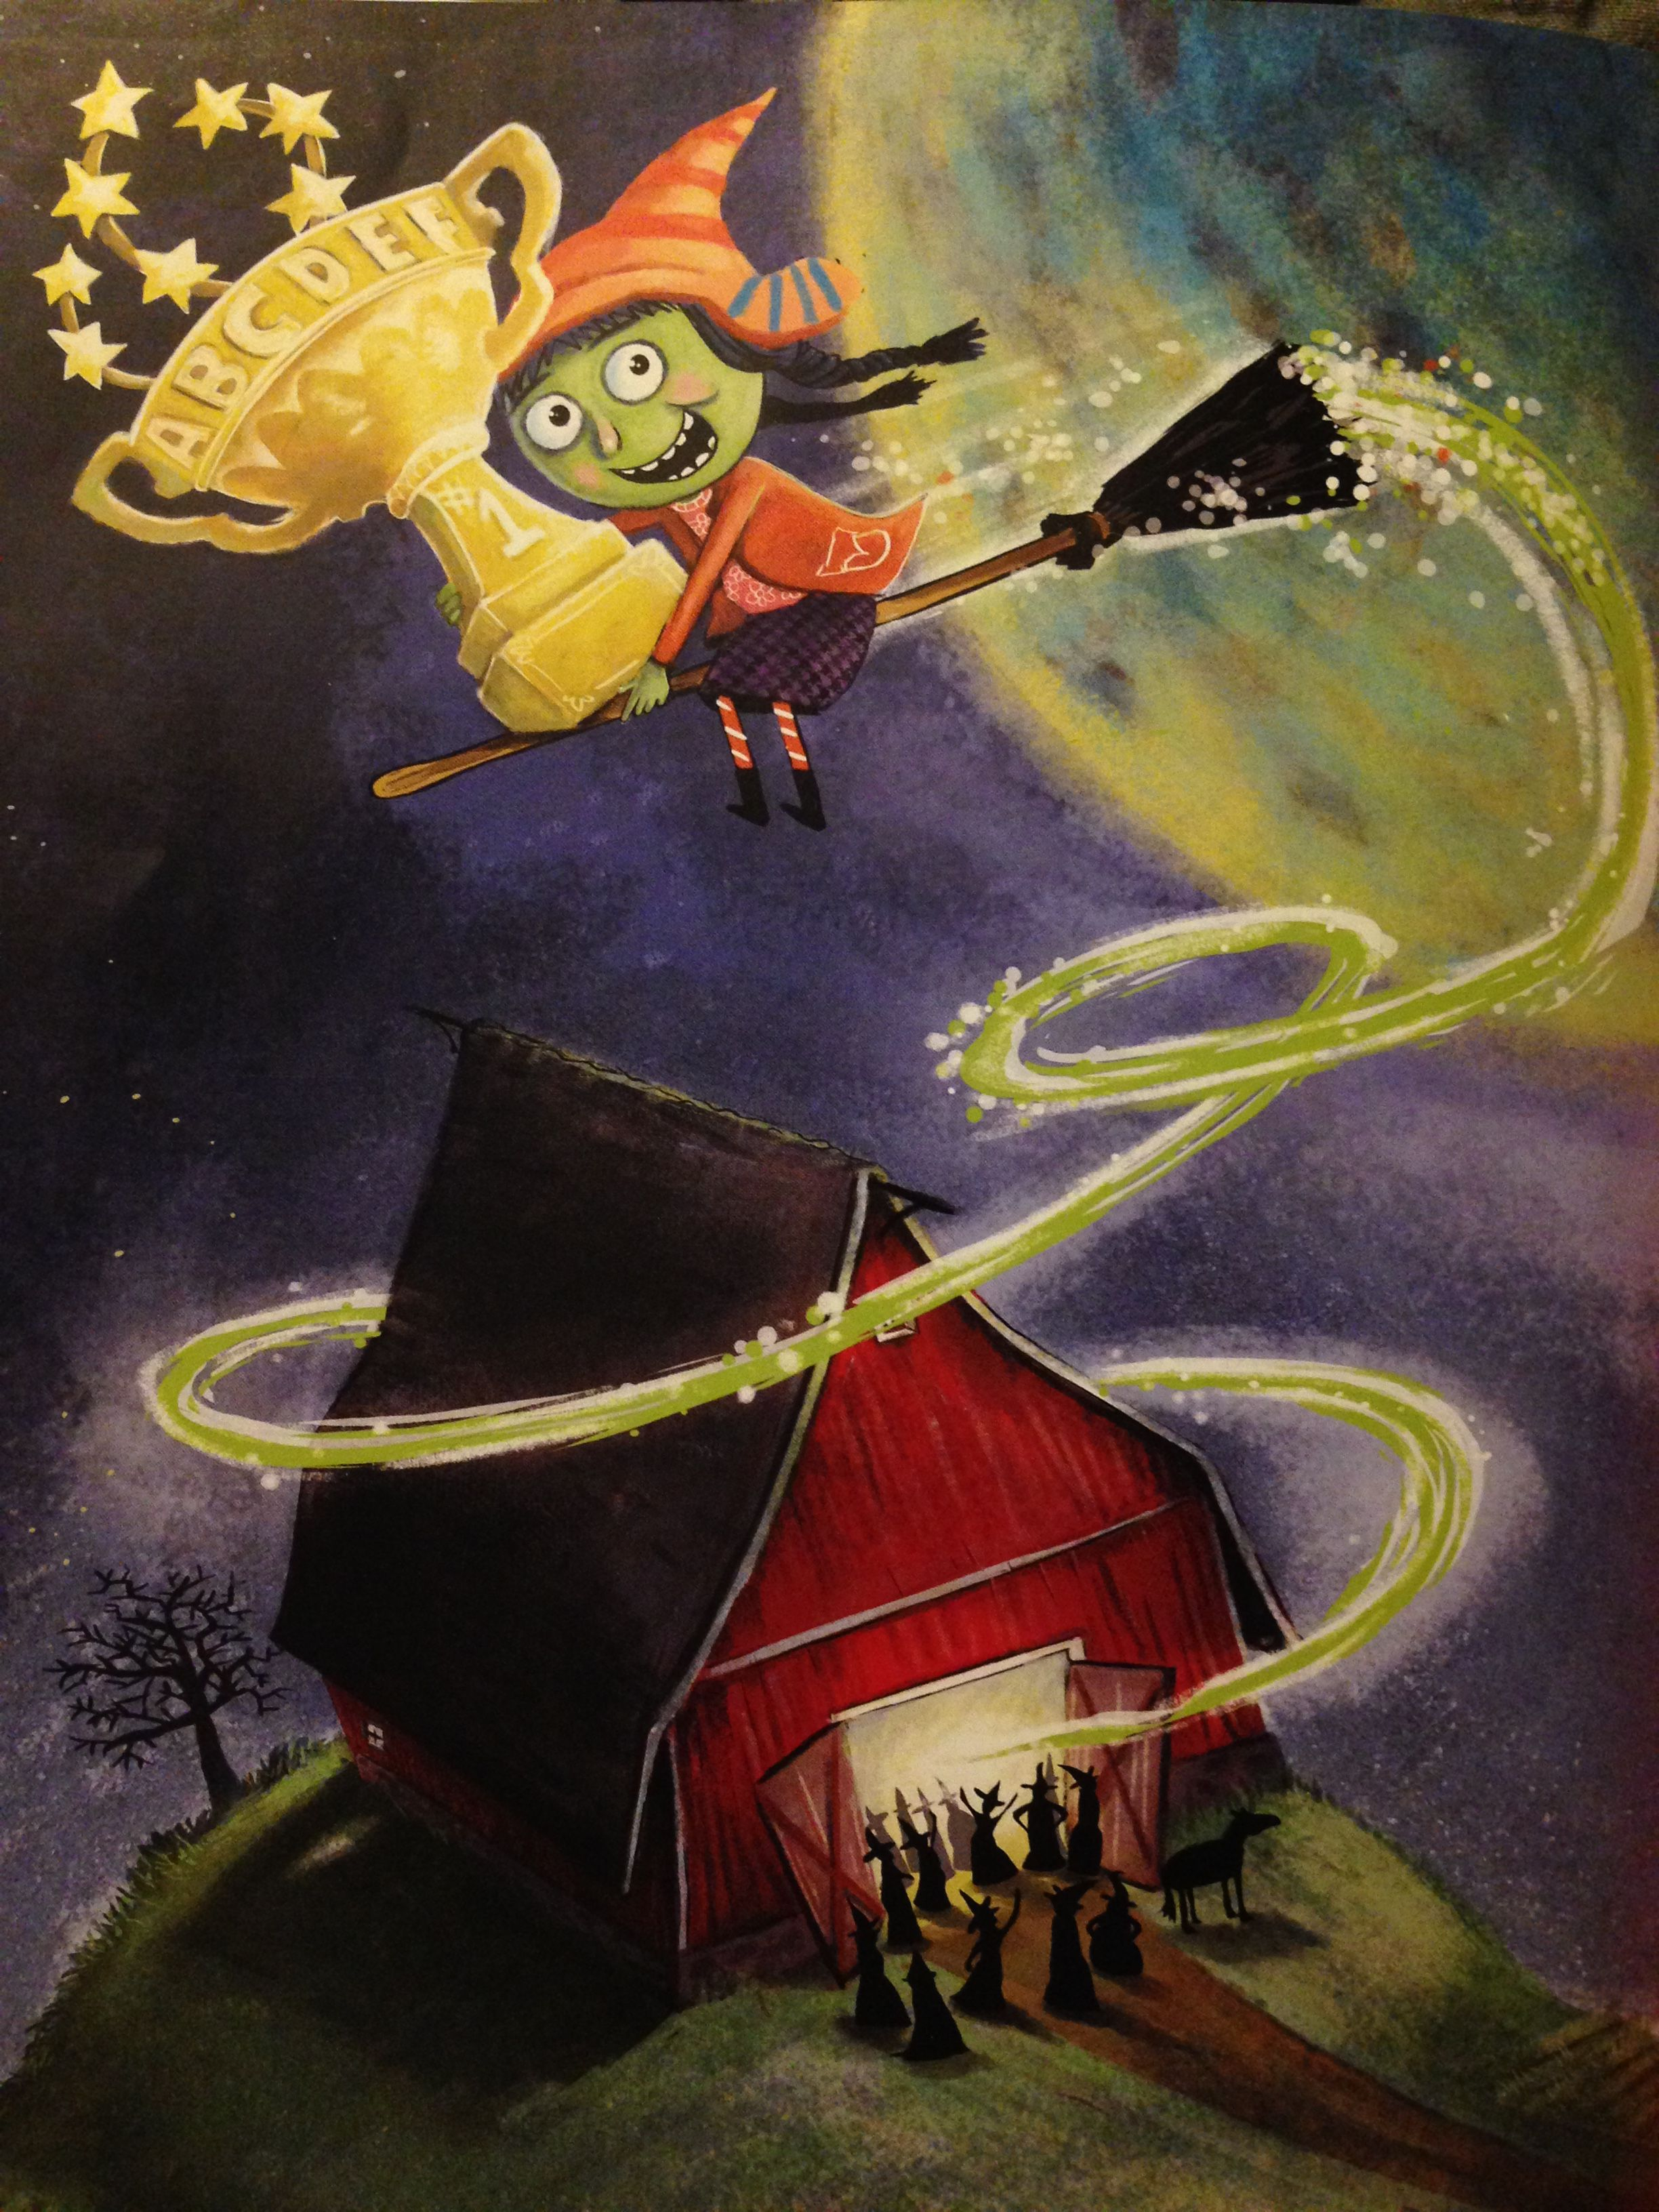 A Very Witchy Spelling Bee by George Shannon, Illustrated by Mark Fearing